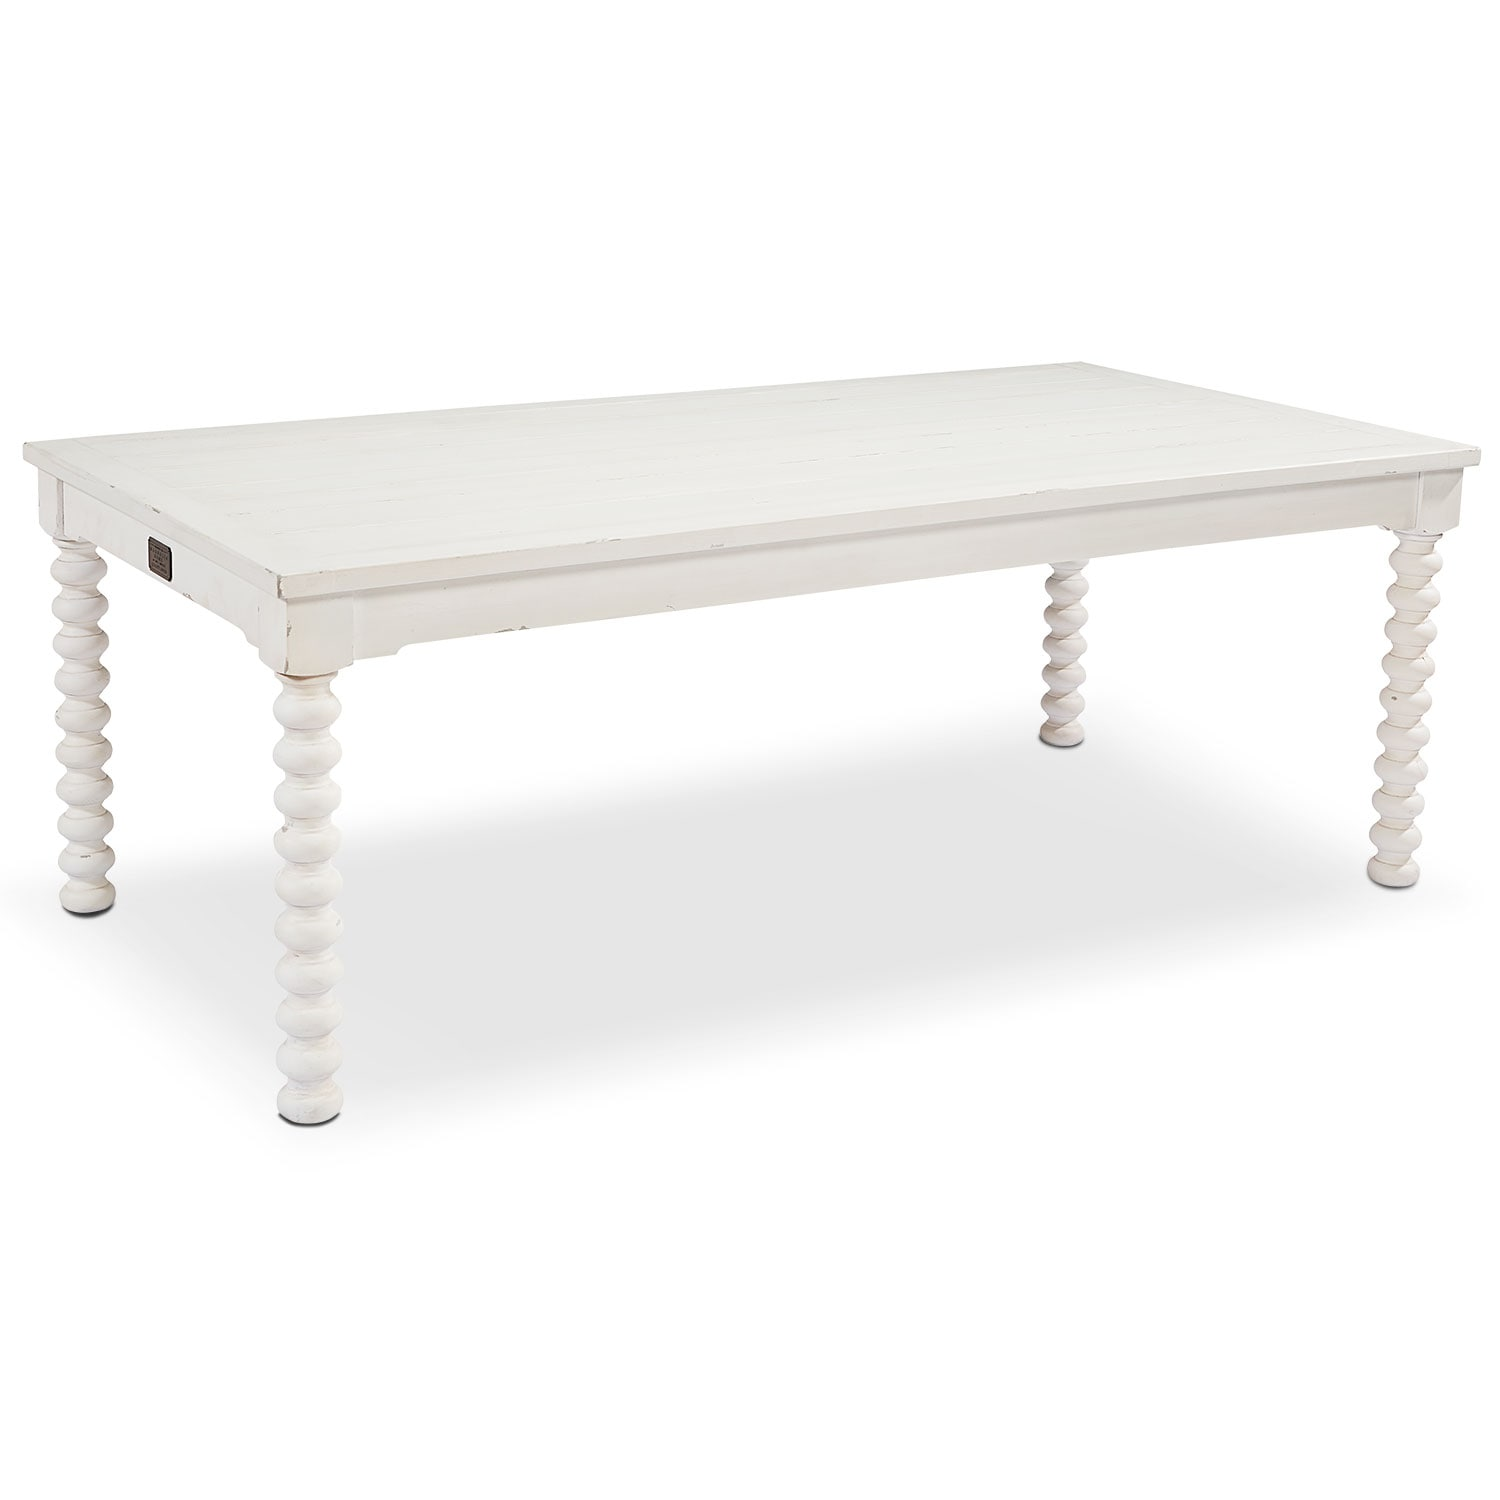 7' Spool Leg Dining Table - White